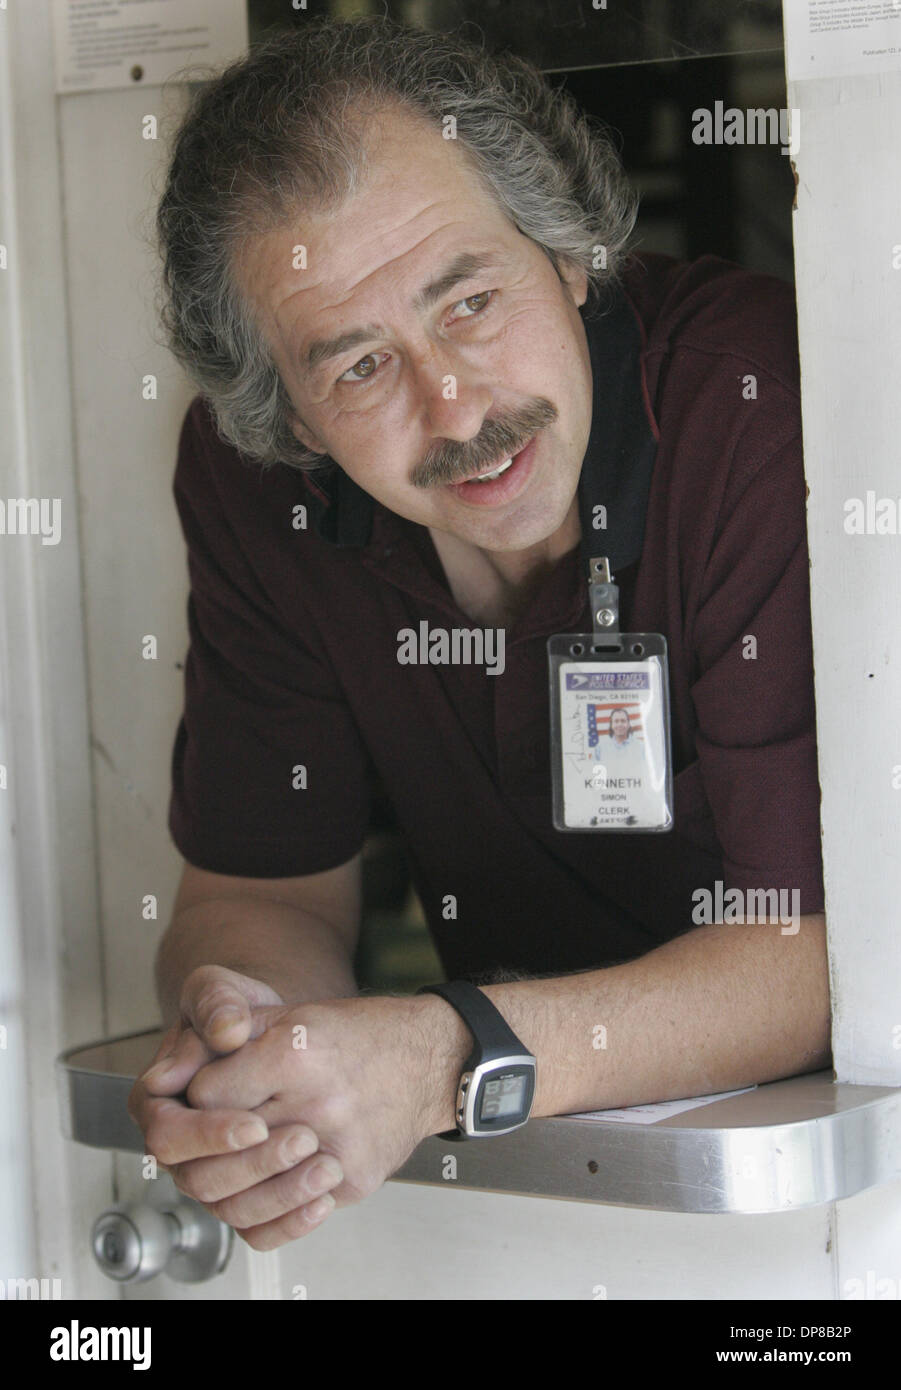 (Published 5/21/2005, B-1:2)  Newly appointed postmaster of the Delzura (Published: Dulzura)  Post Office, Kenneth Simon, talked with a customer as they approached the small post office..UT/DON KOHLBAUER - Stock Image